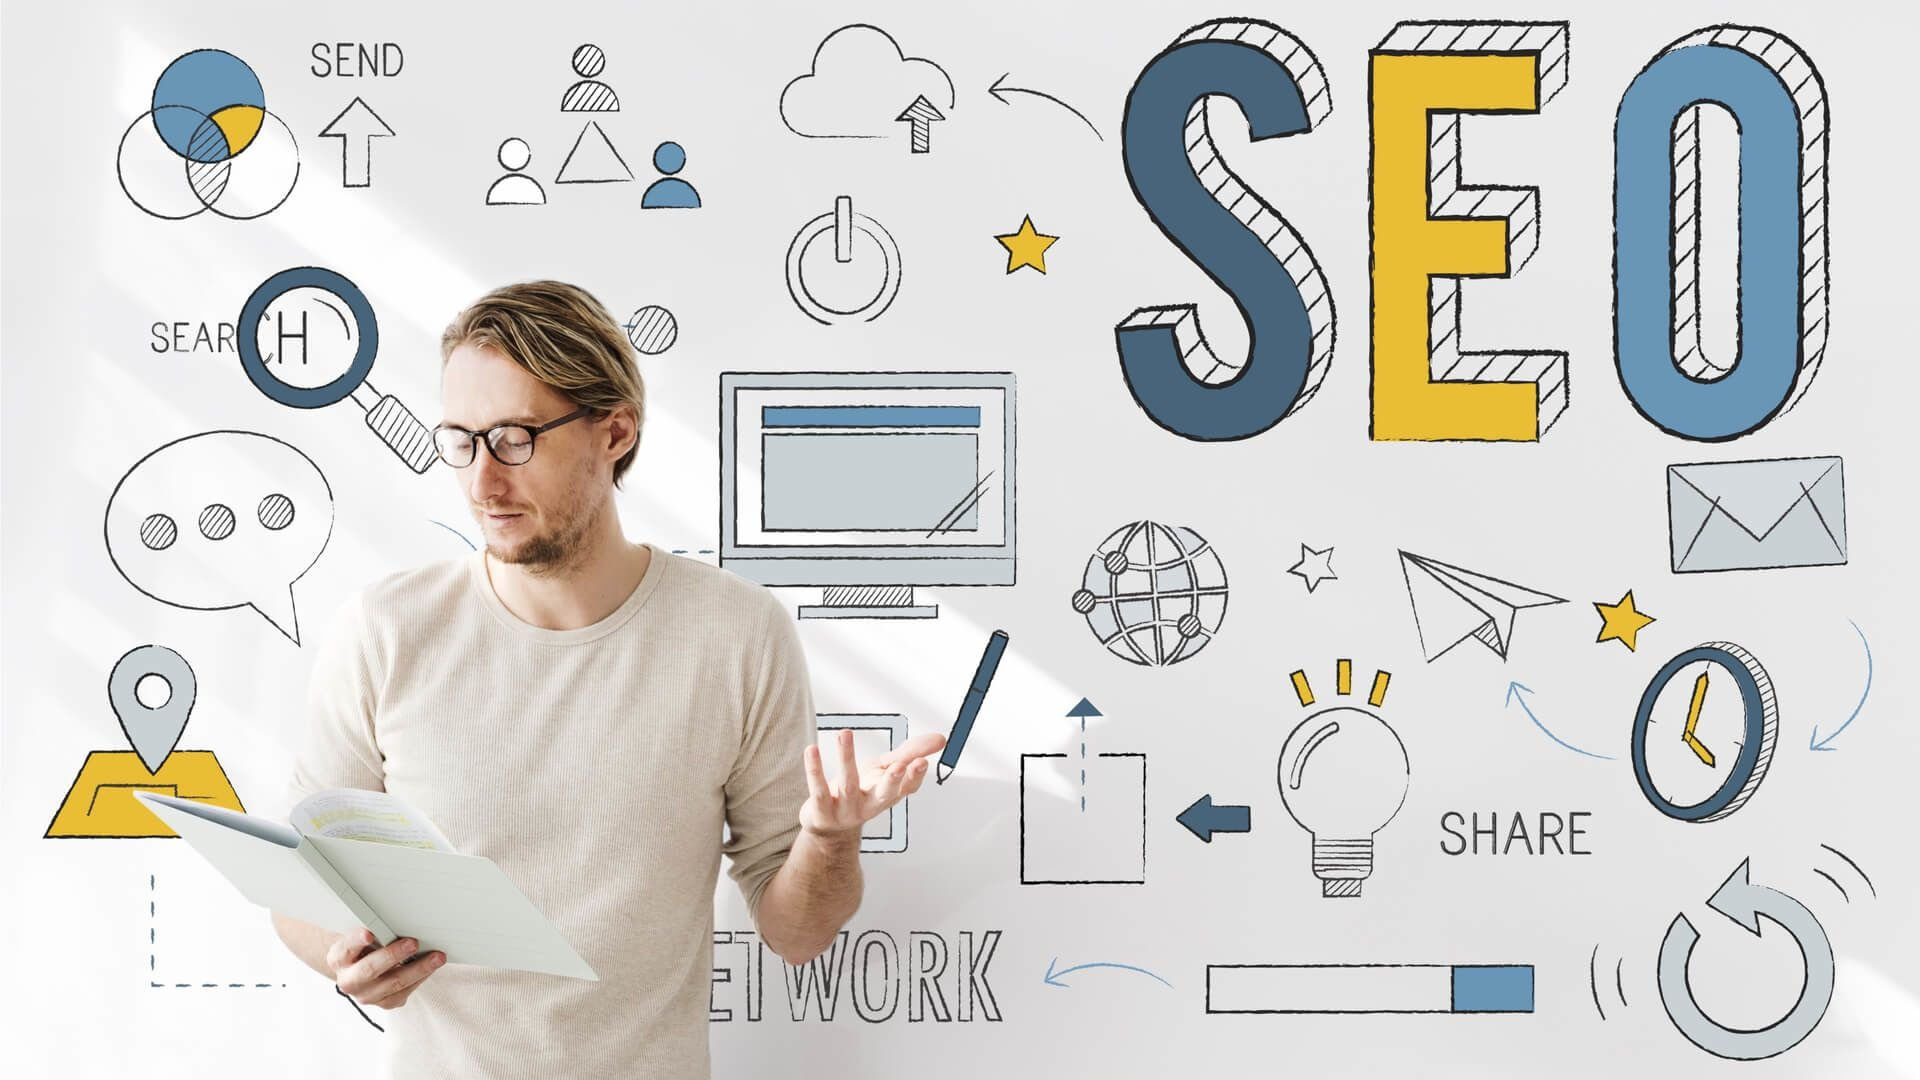 SEO report by Google - what you should know before working with an SEO company